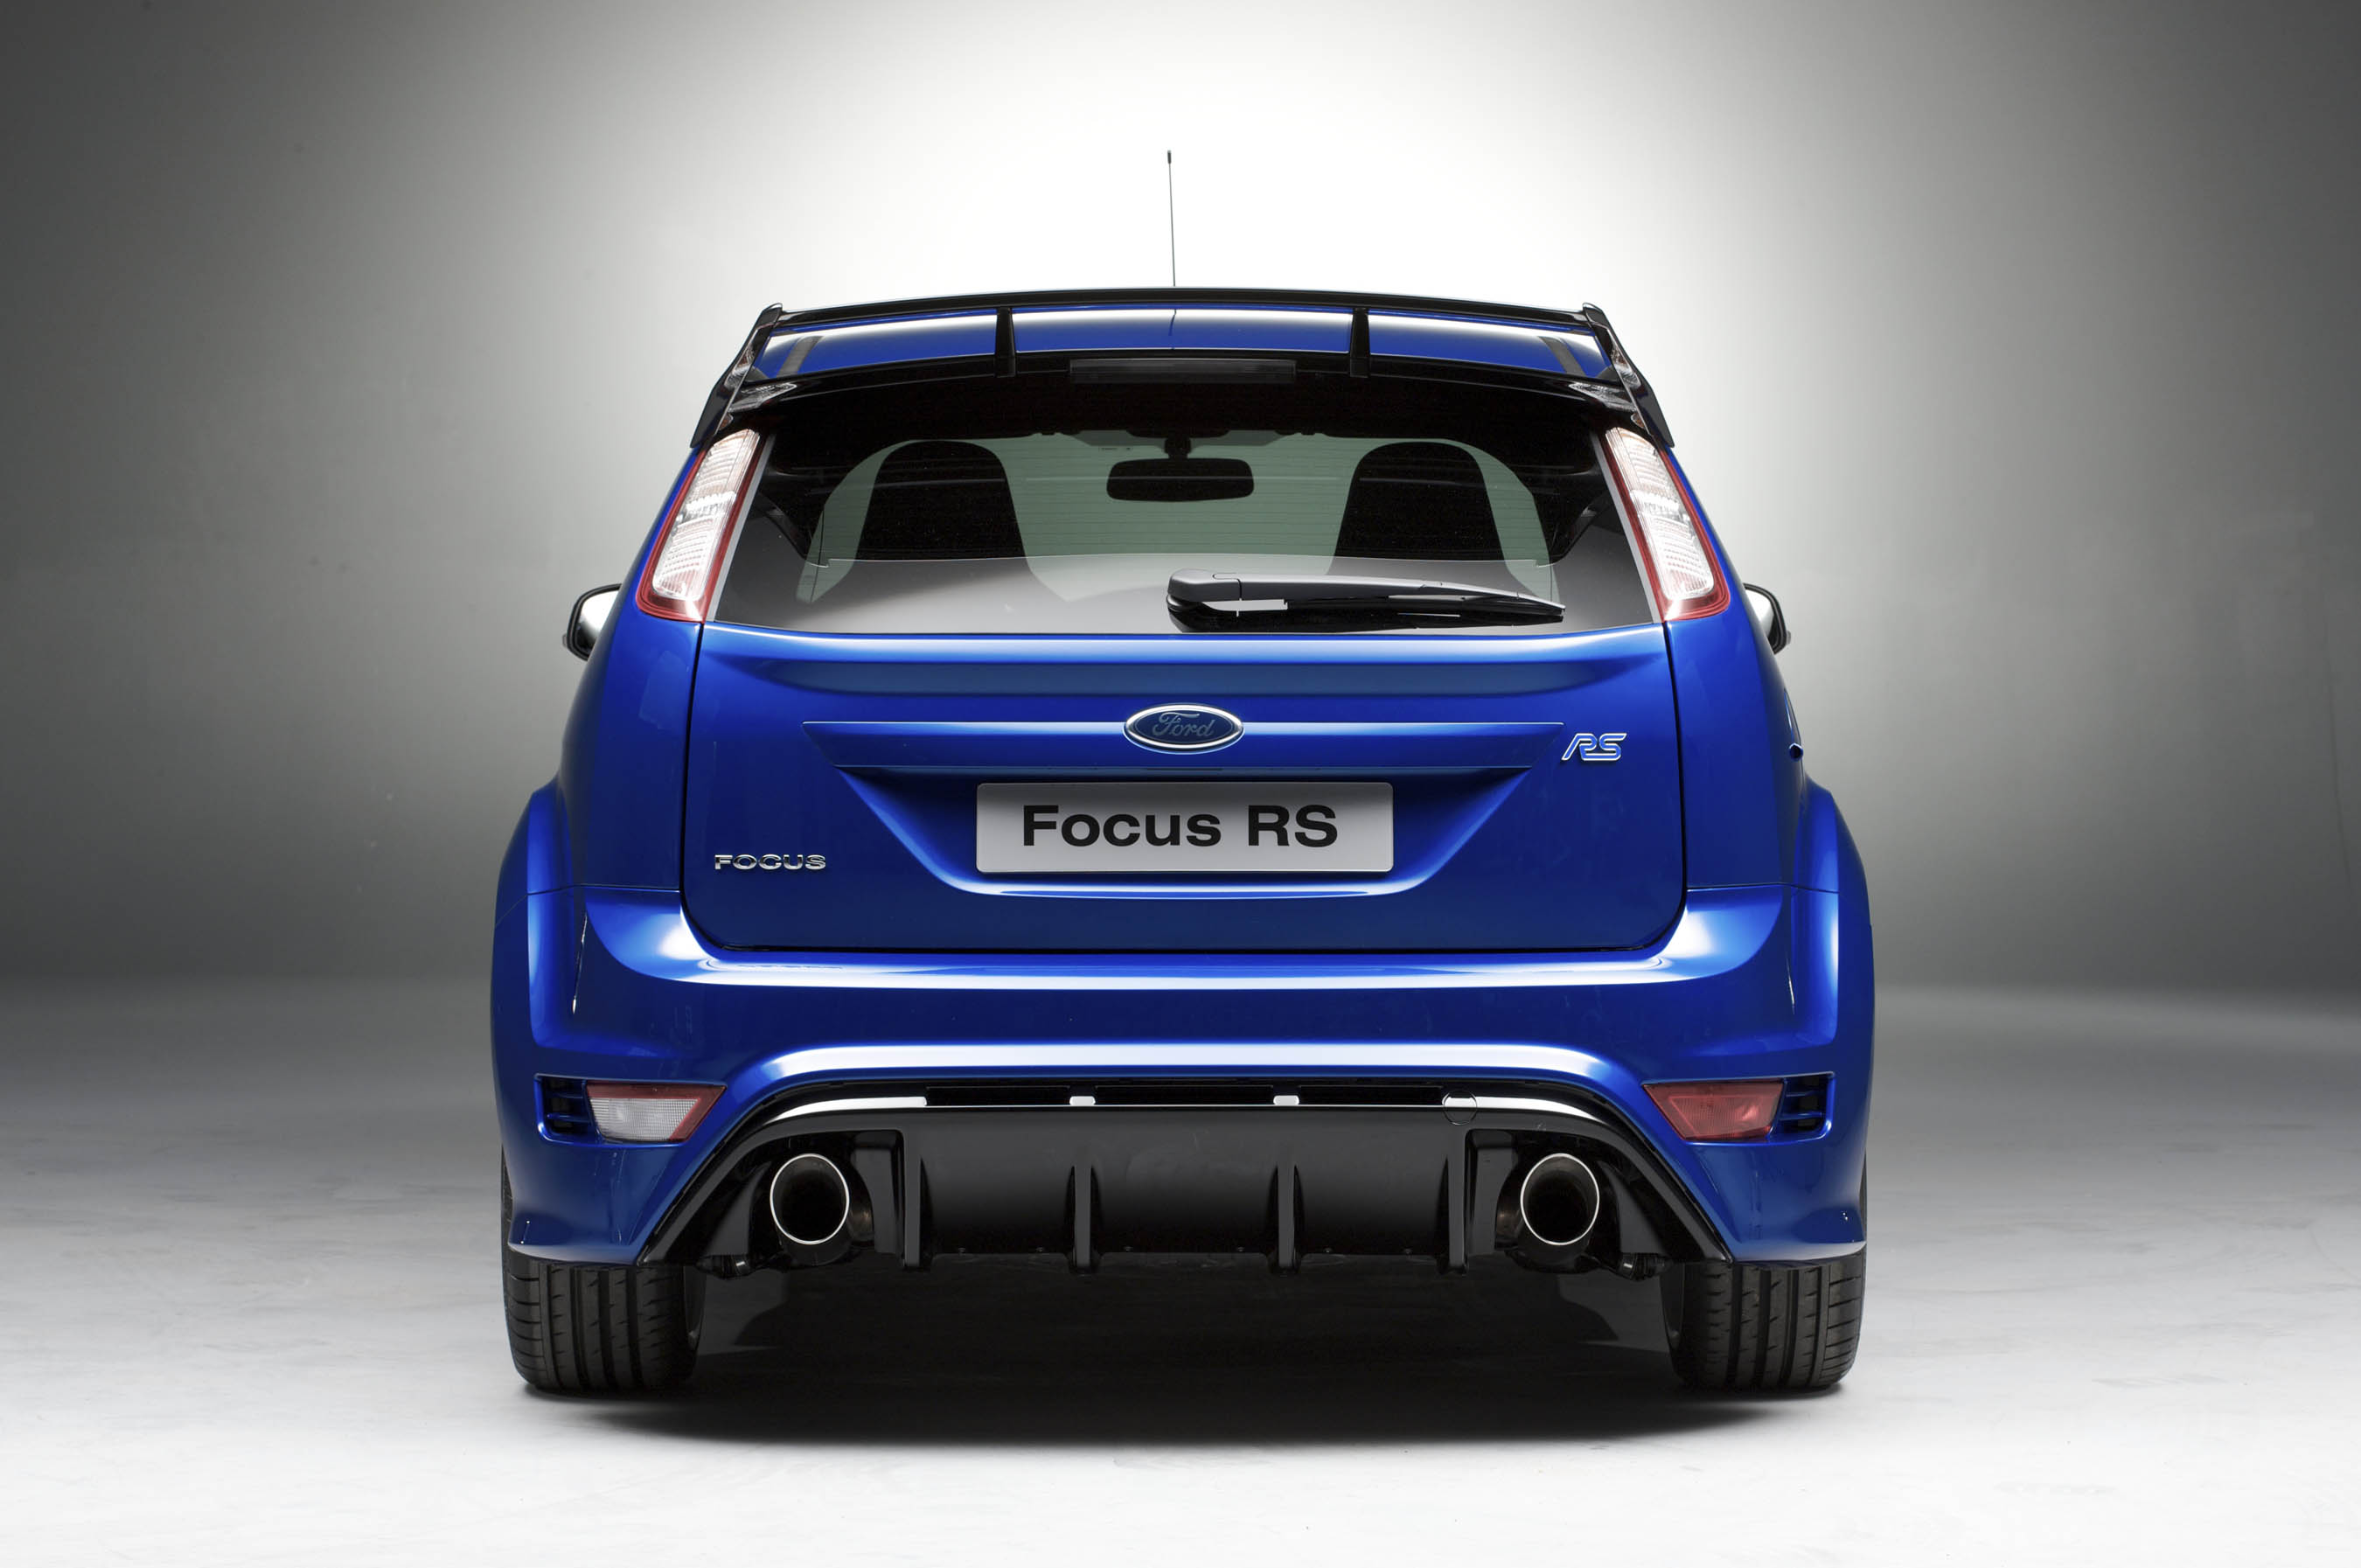 New Ford Focus Rs In Detail Engine 2000 First Generation 02 2002 2008